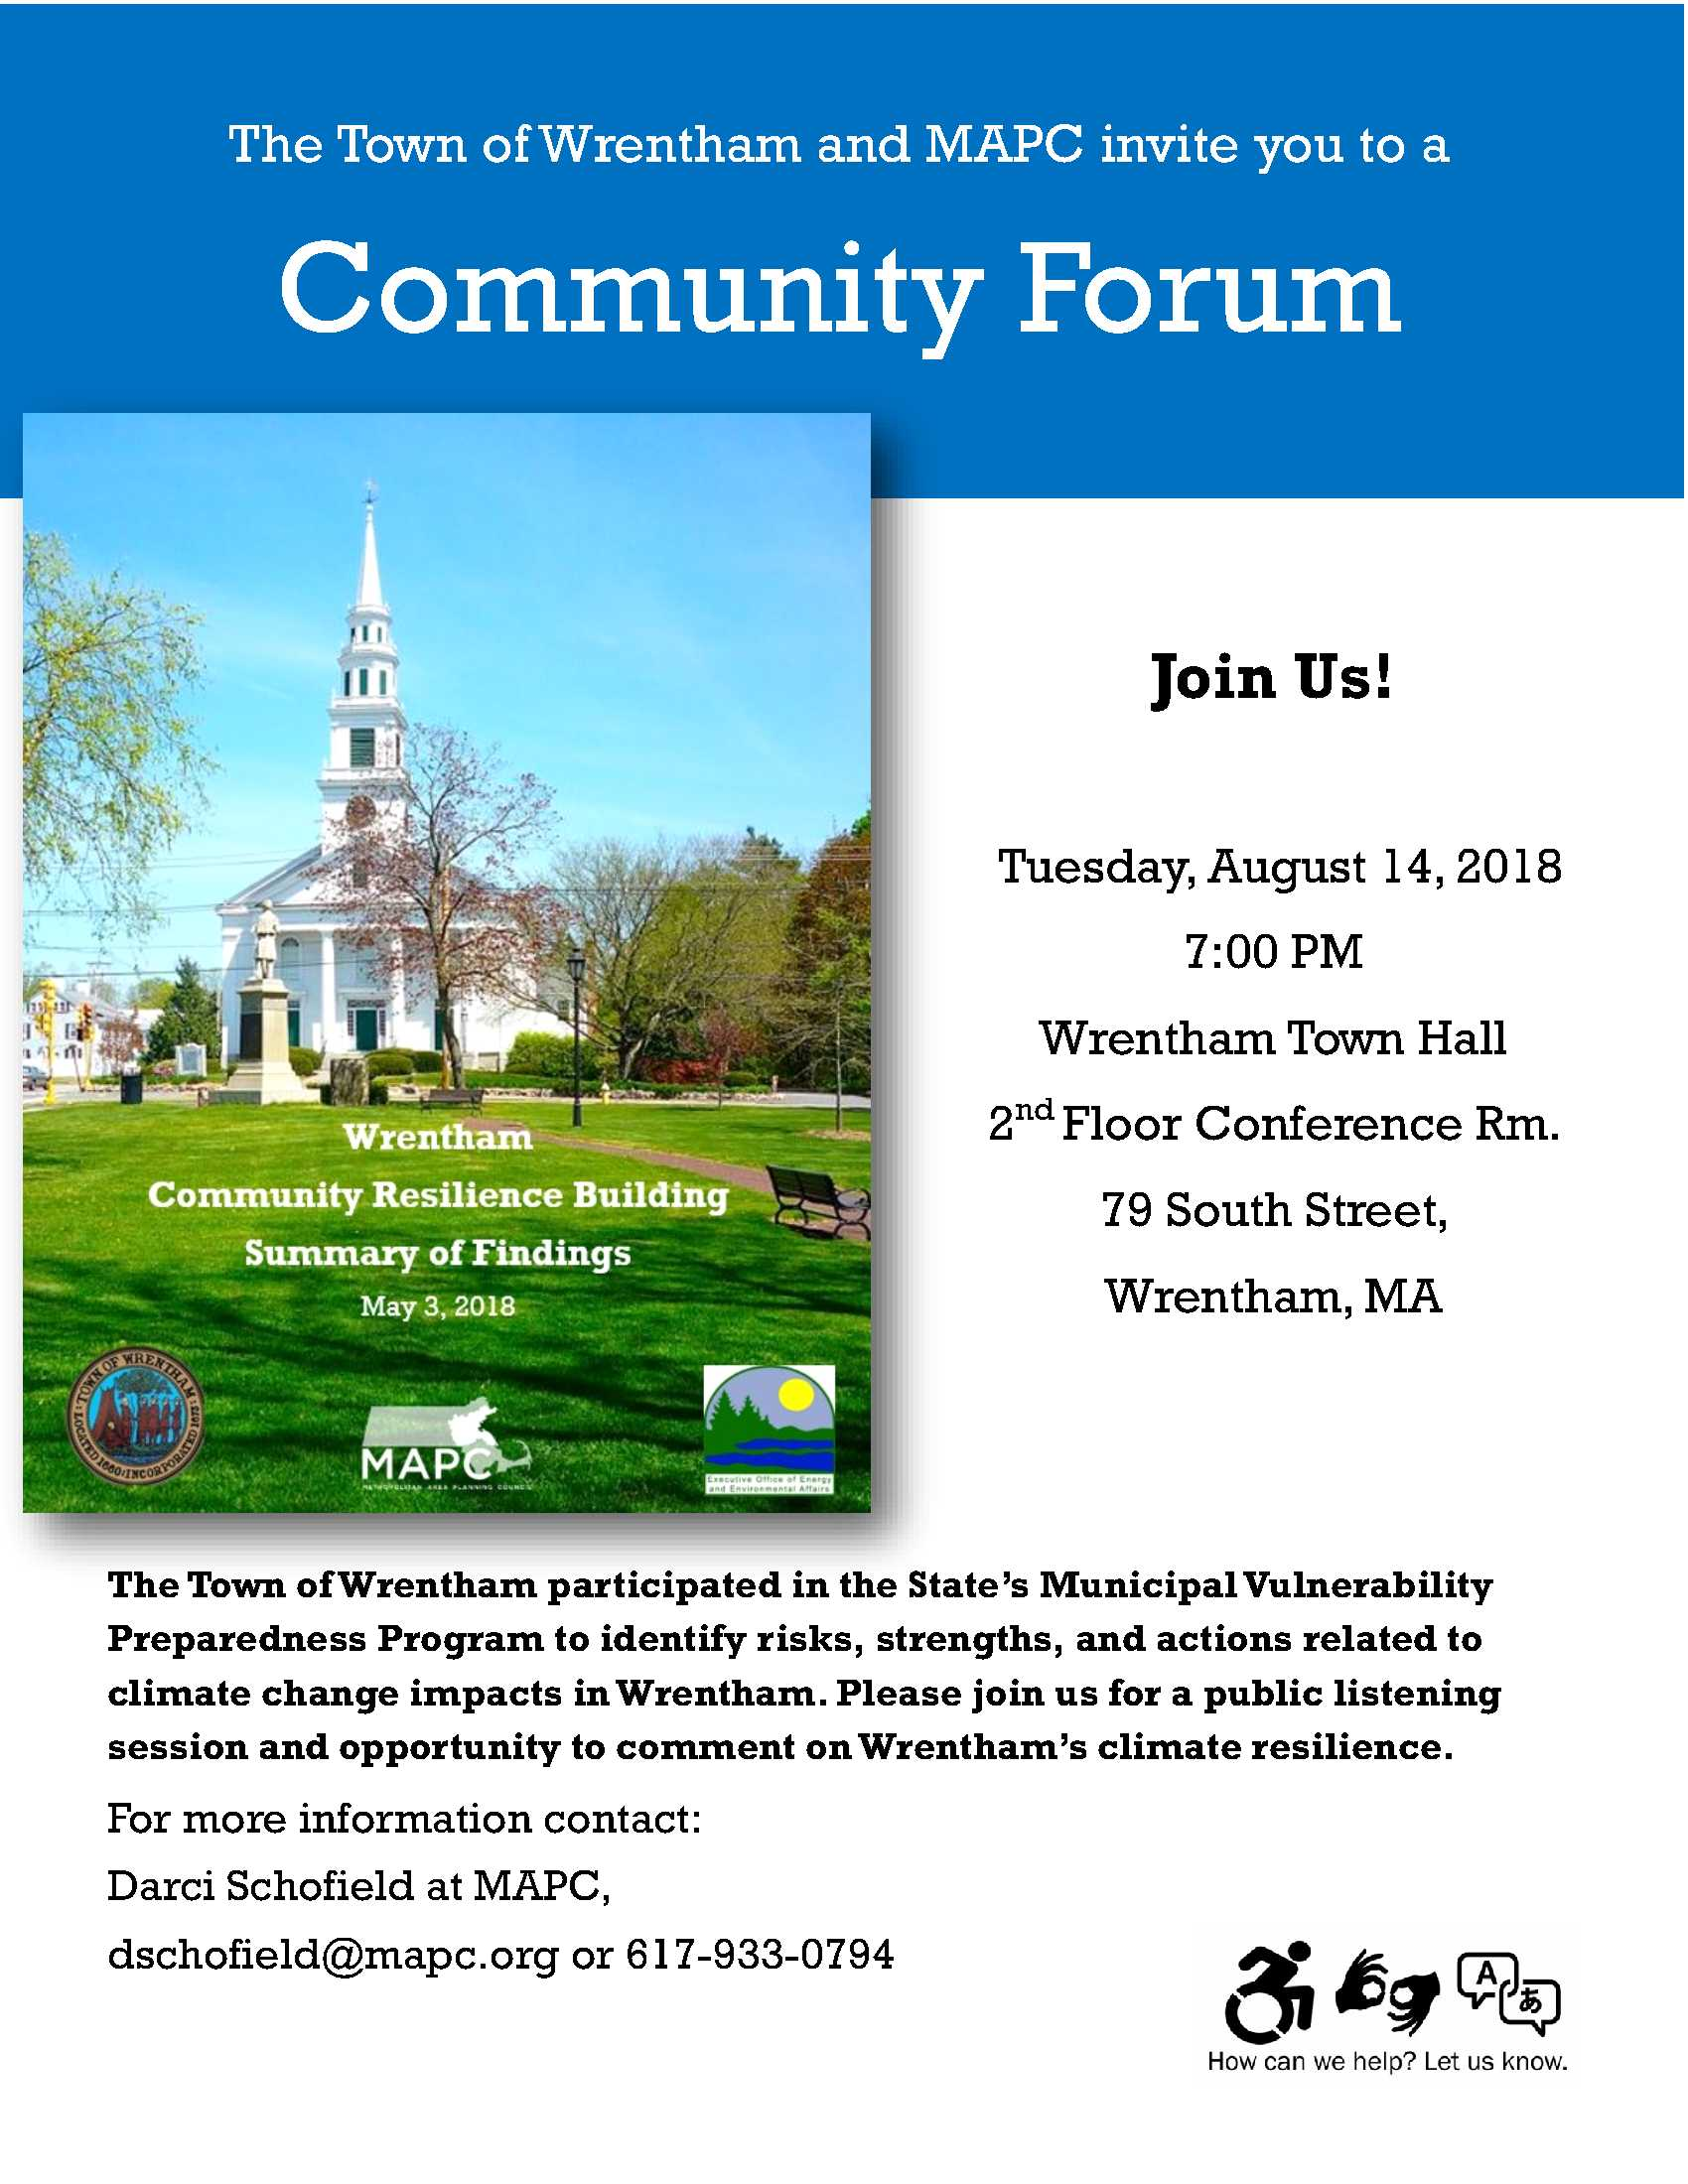 Aug 14 Community Forum Wrentham